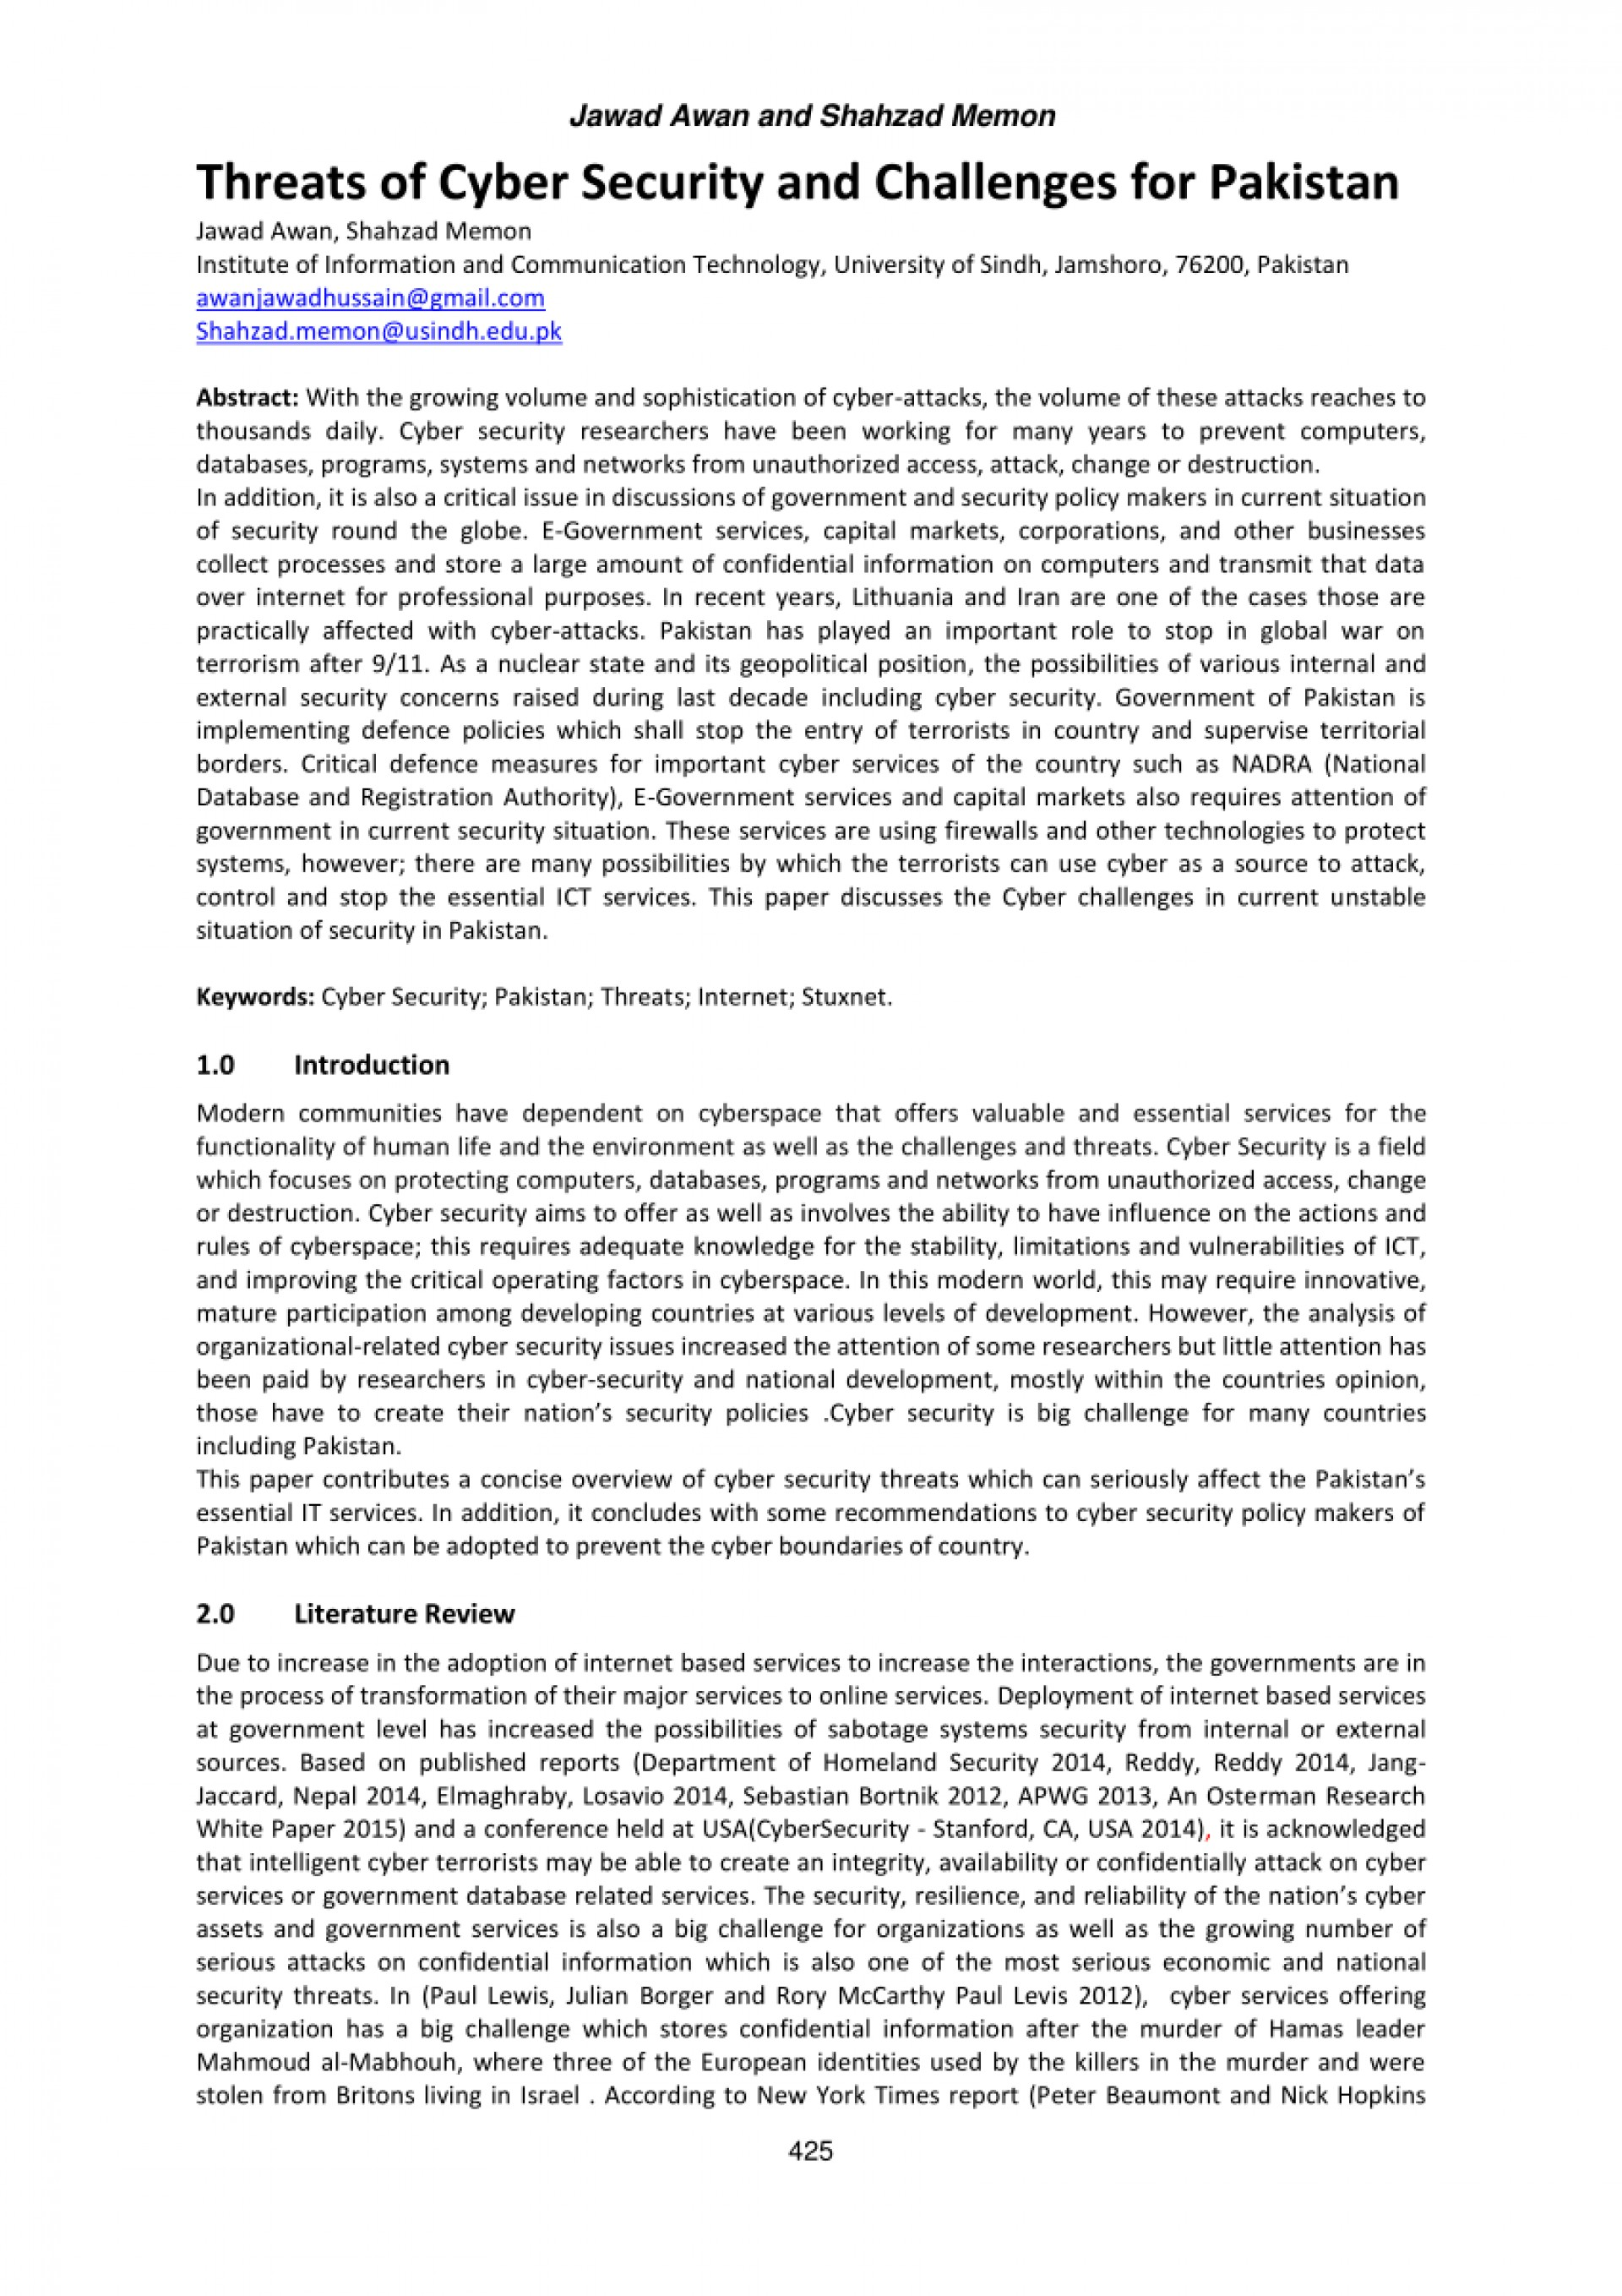 005 Research Paper Cyber Security Papers Pdf Wondrous 2017 1920